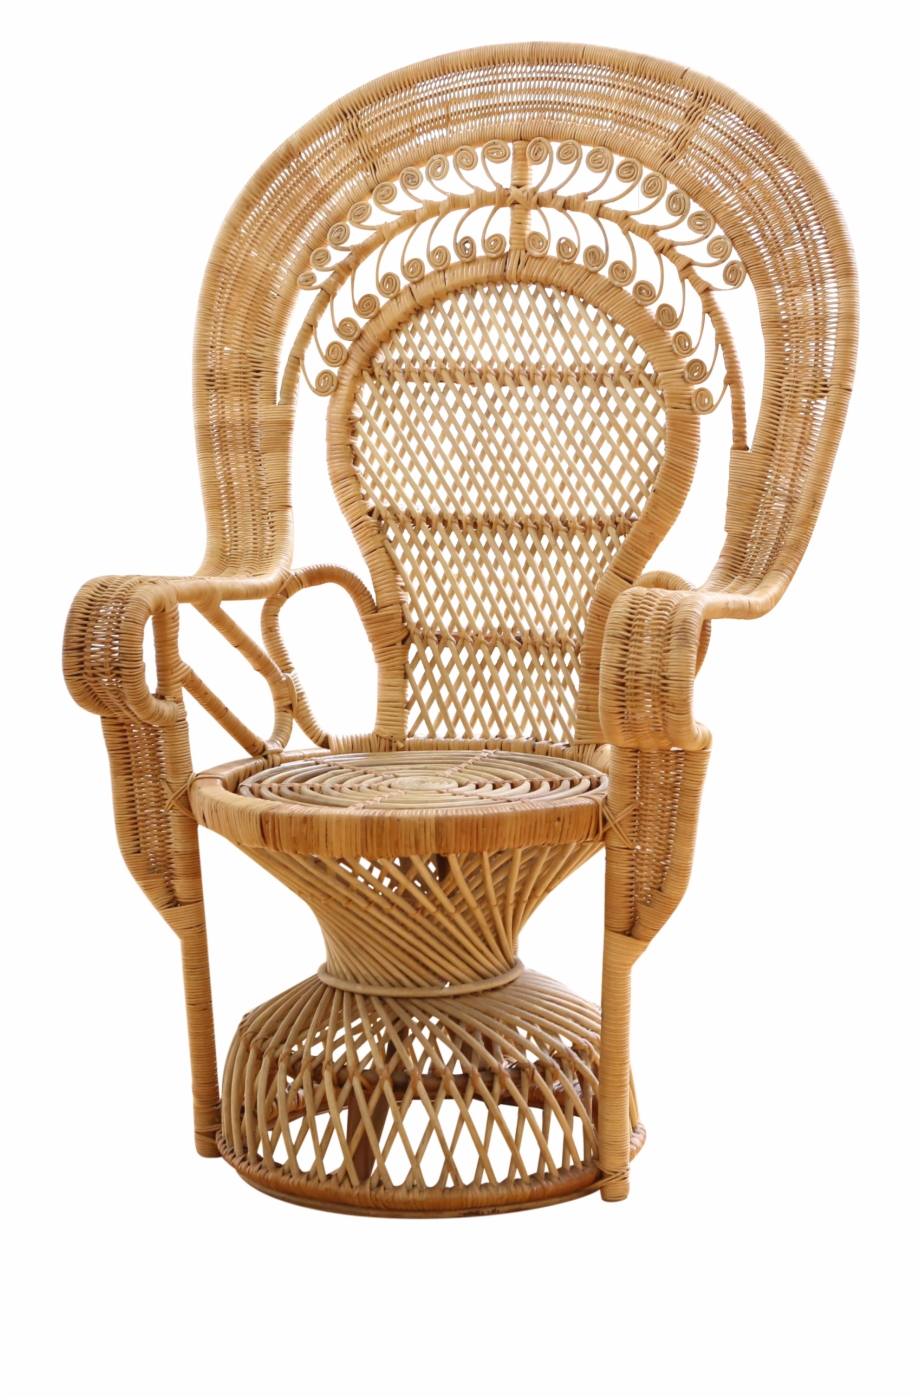 Vintage Rattan And Wicker Peacock Chair On Chairish.